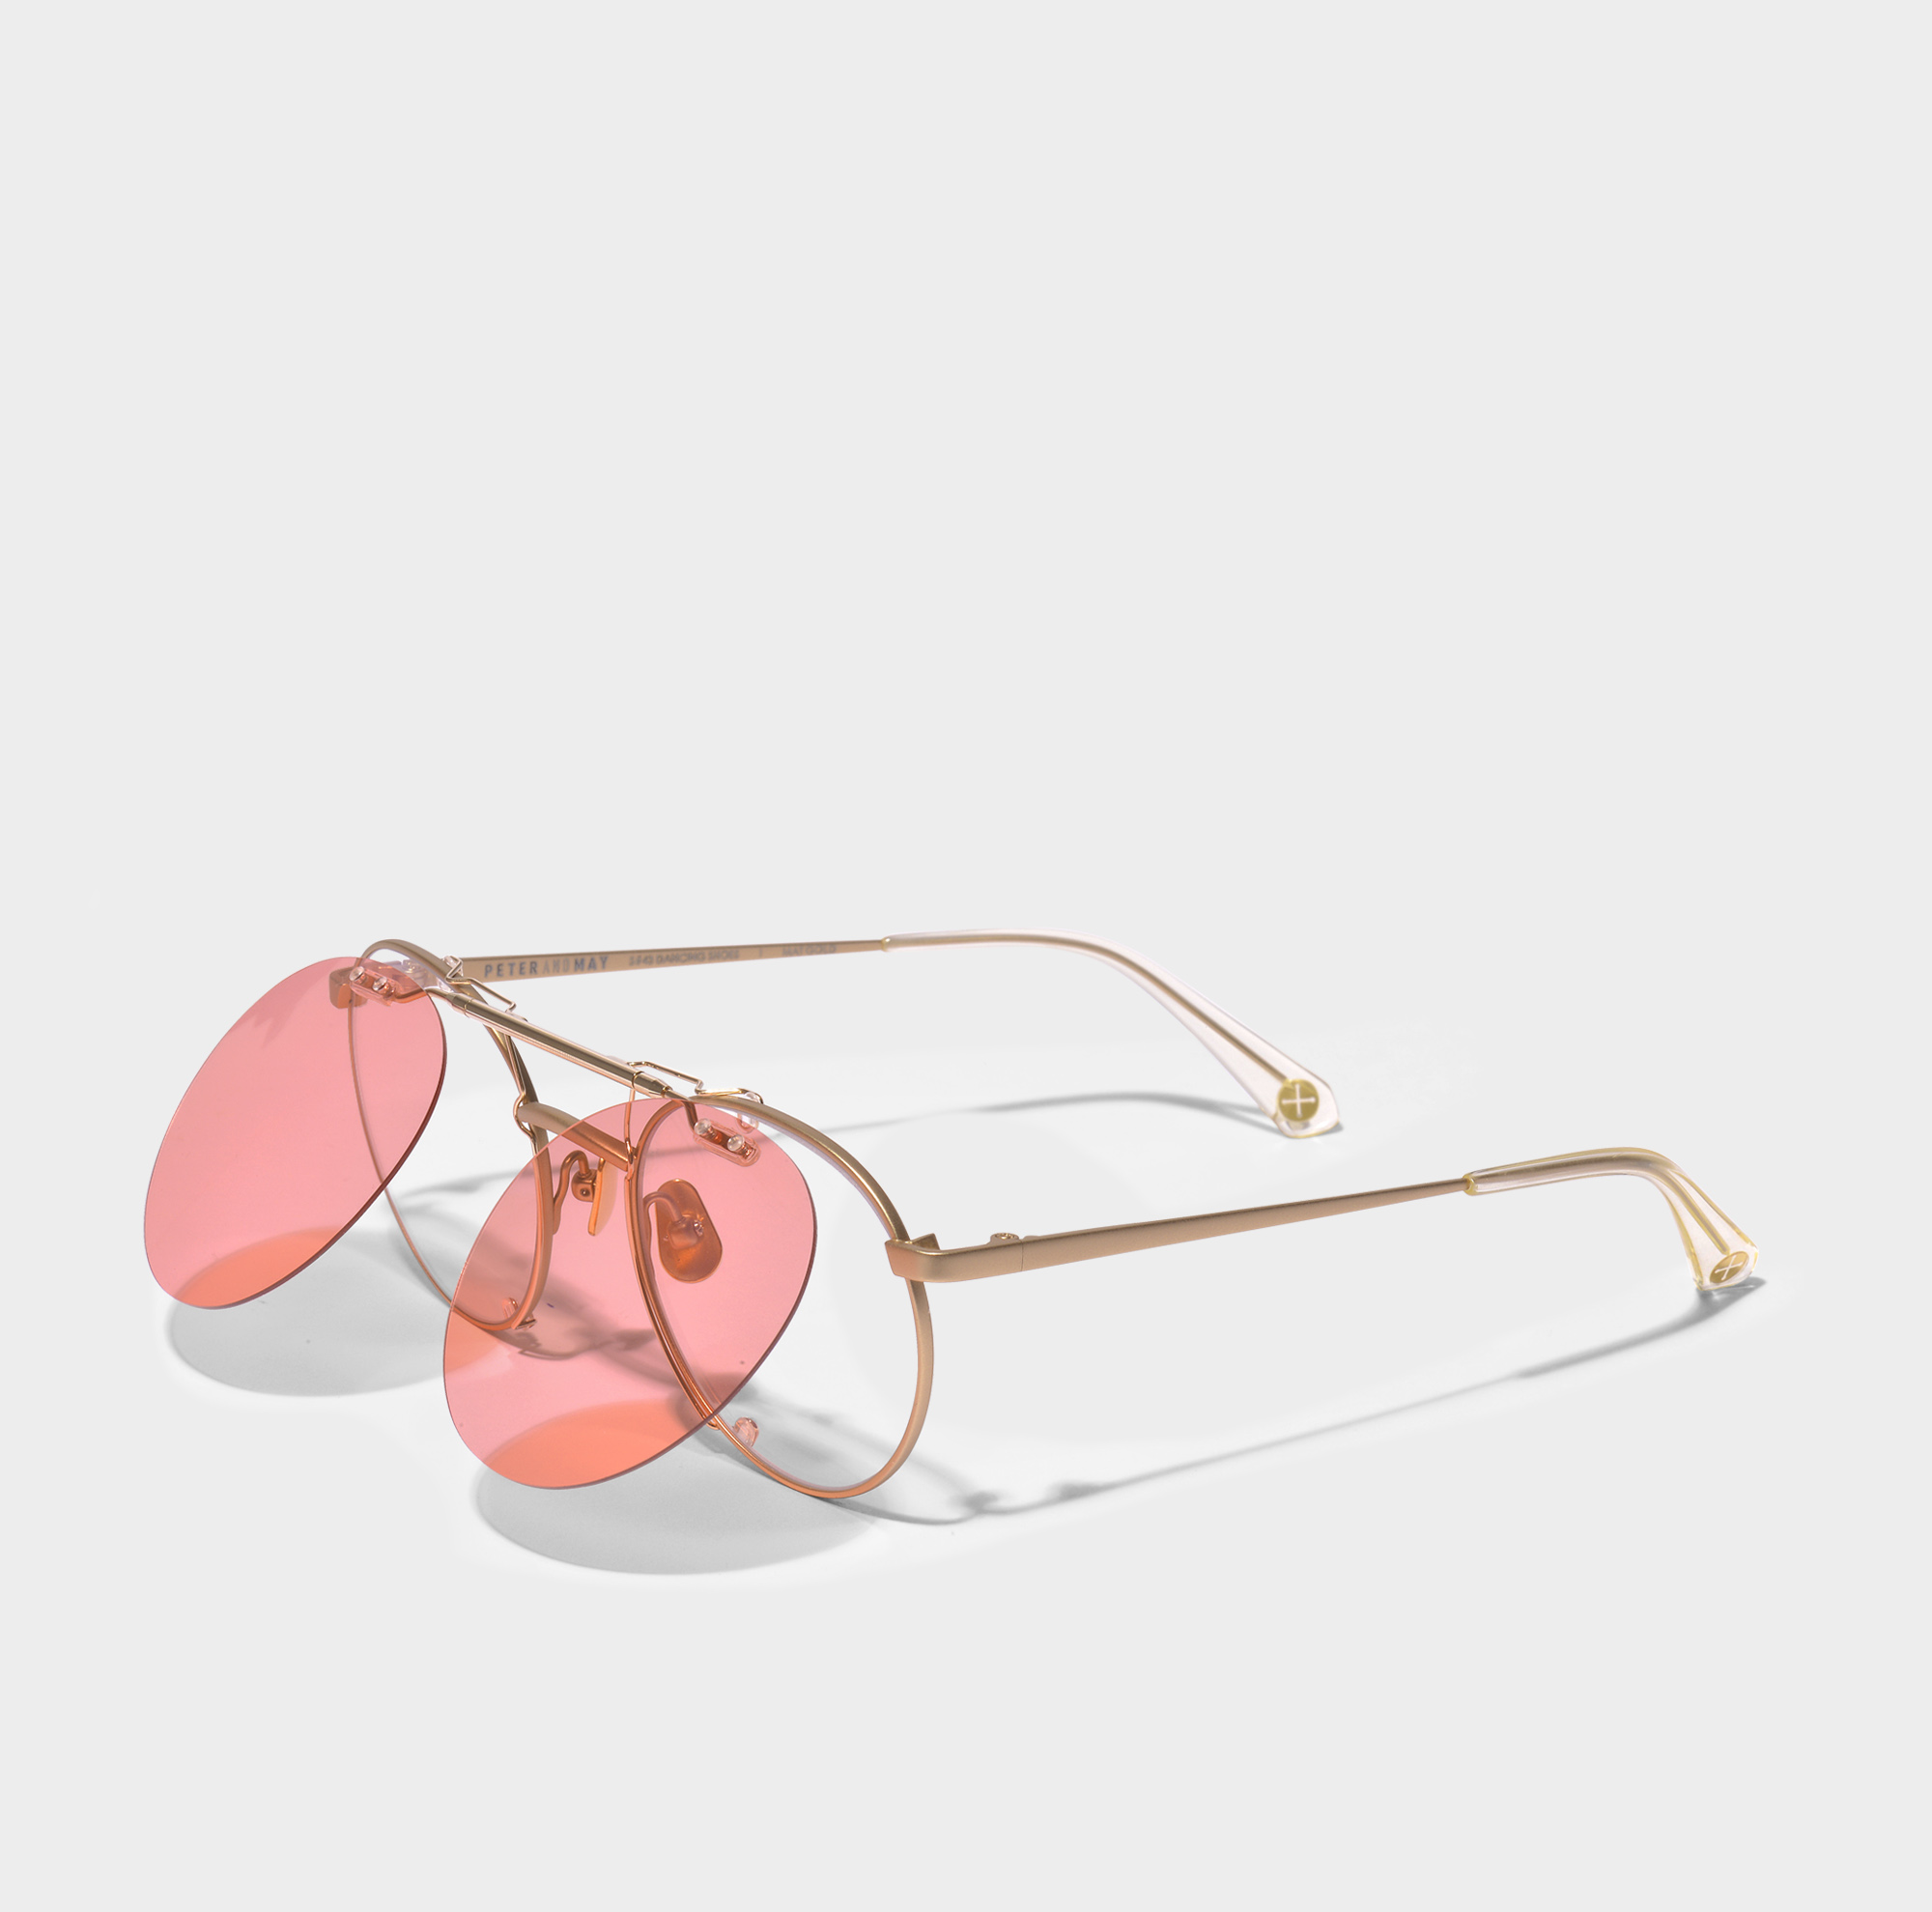 PETER AND MAY Dancing Shoes sunglasses